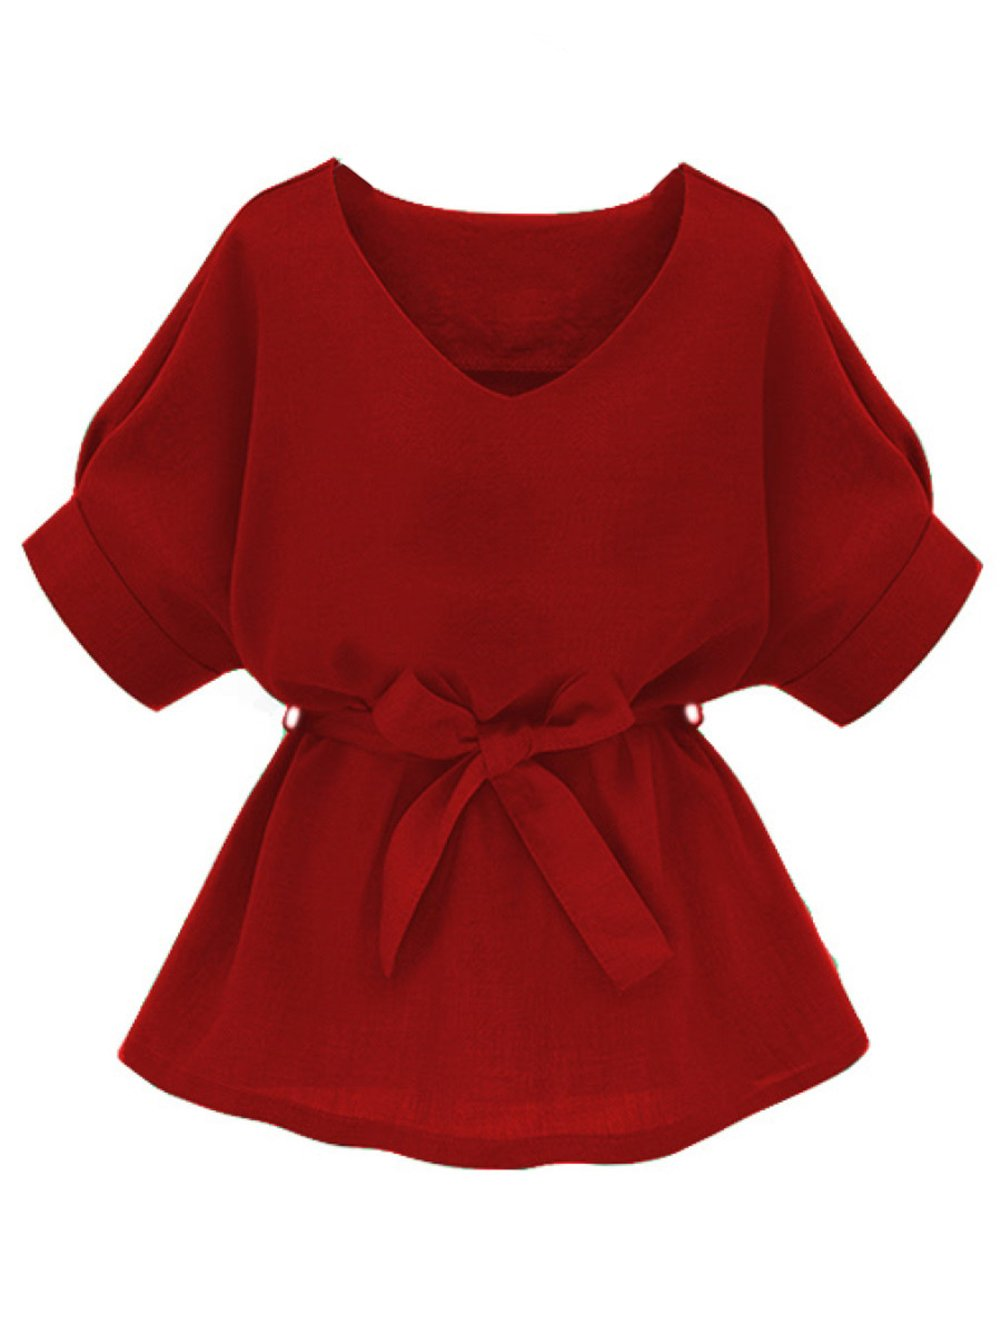 Milumia Womens V Neckline Self Tie Short Sleeve Blouse Tops Red X-Large